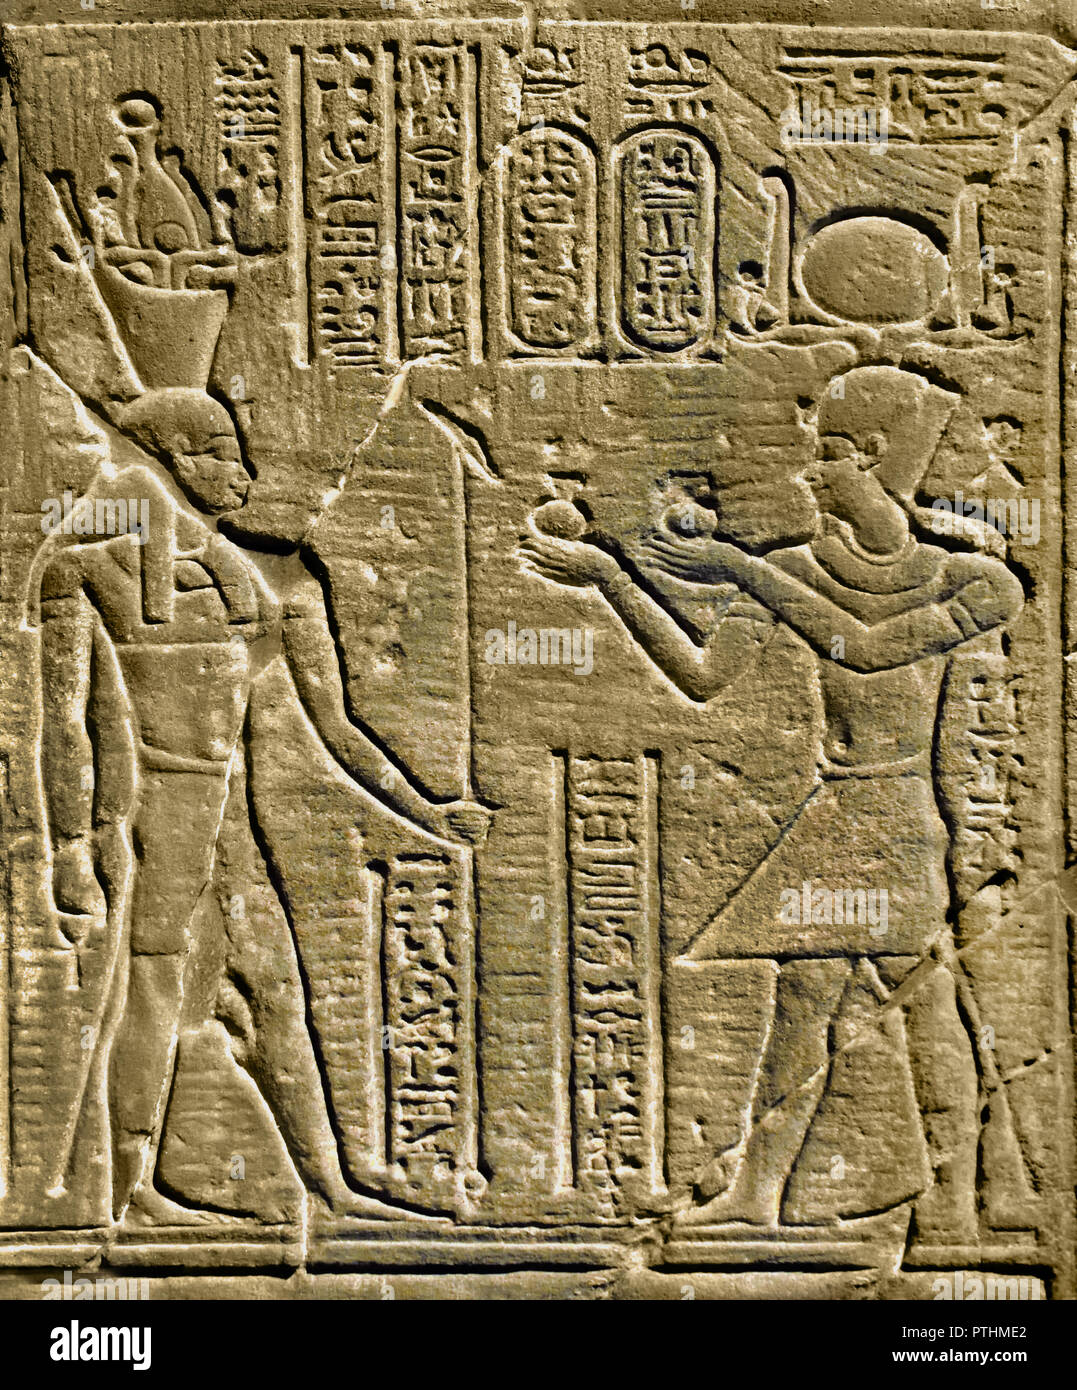 Temple relief shows the King offering wine before Geb, the Earth God 80-51 BC reign of Ptolemy XII (Ptolemaic Period). Egypt. - Stock Image